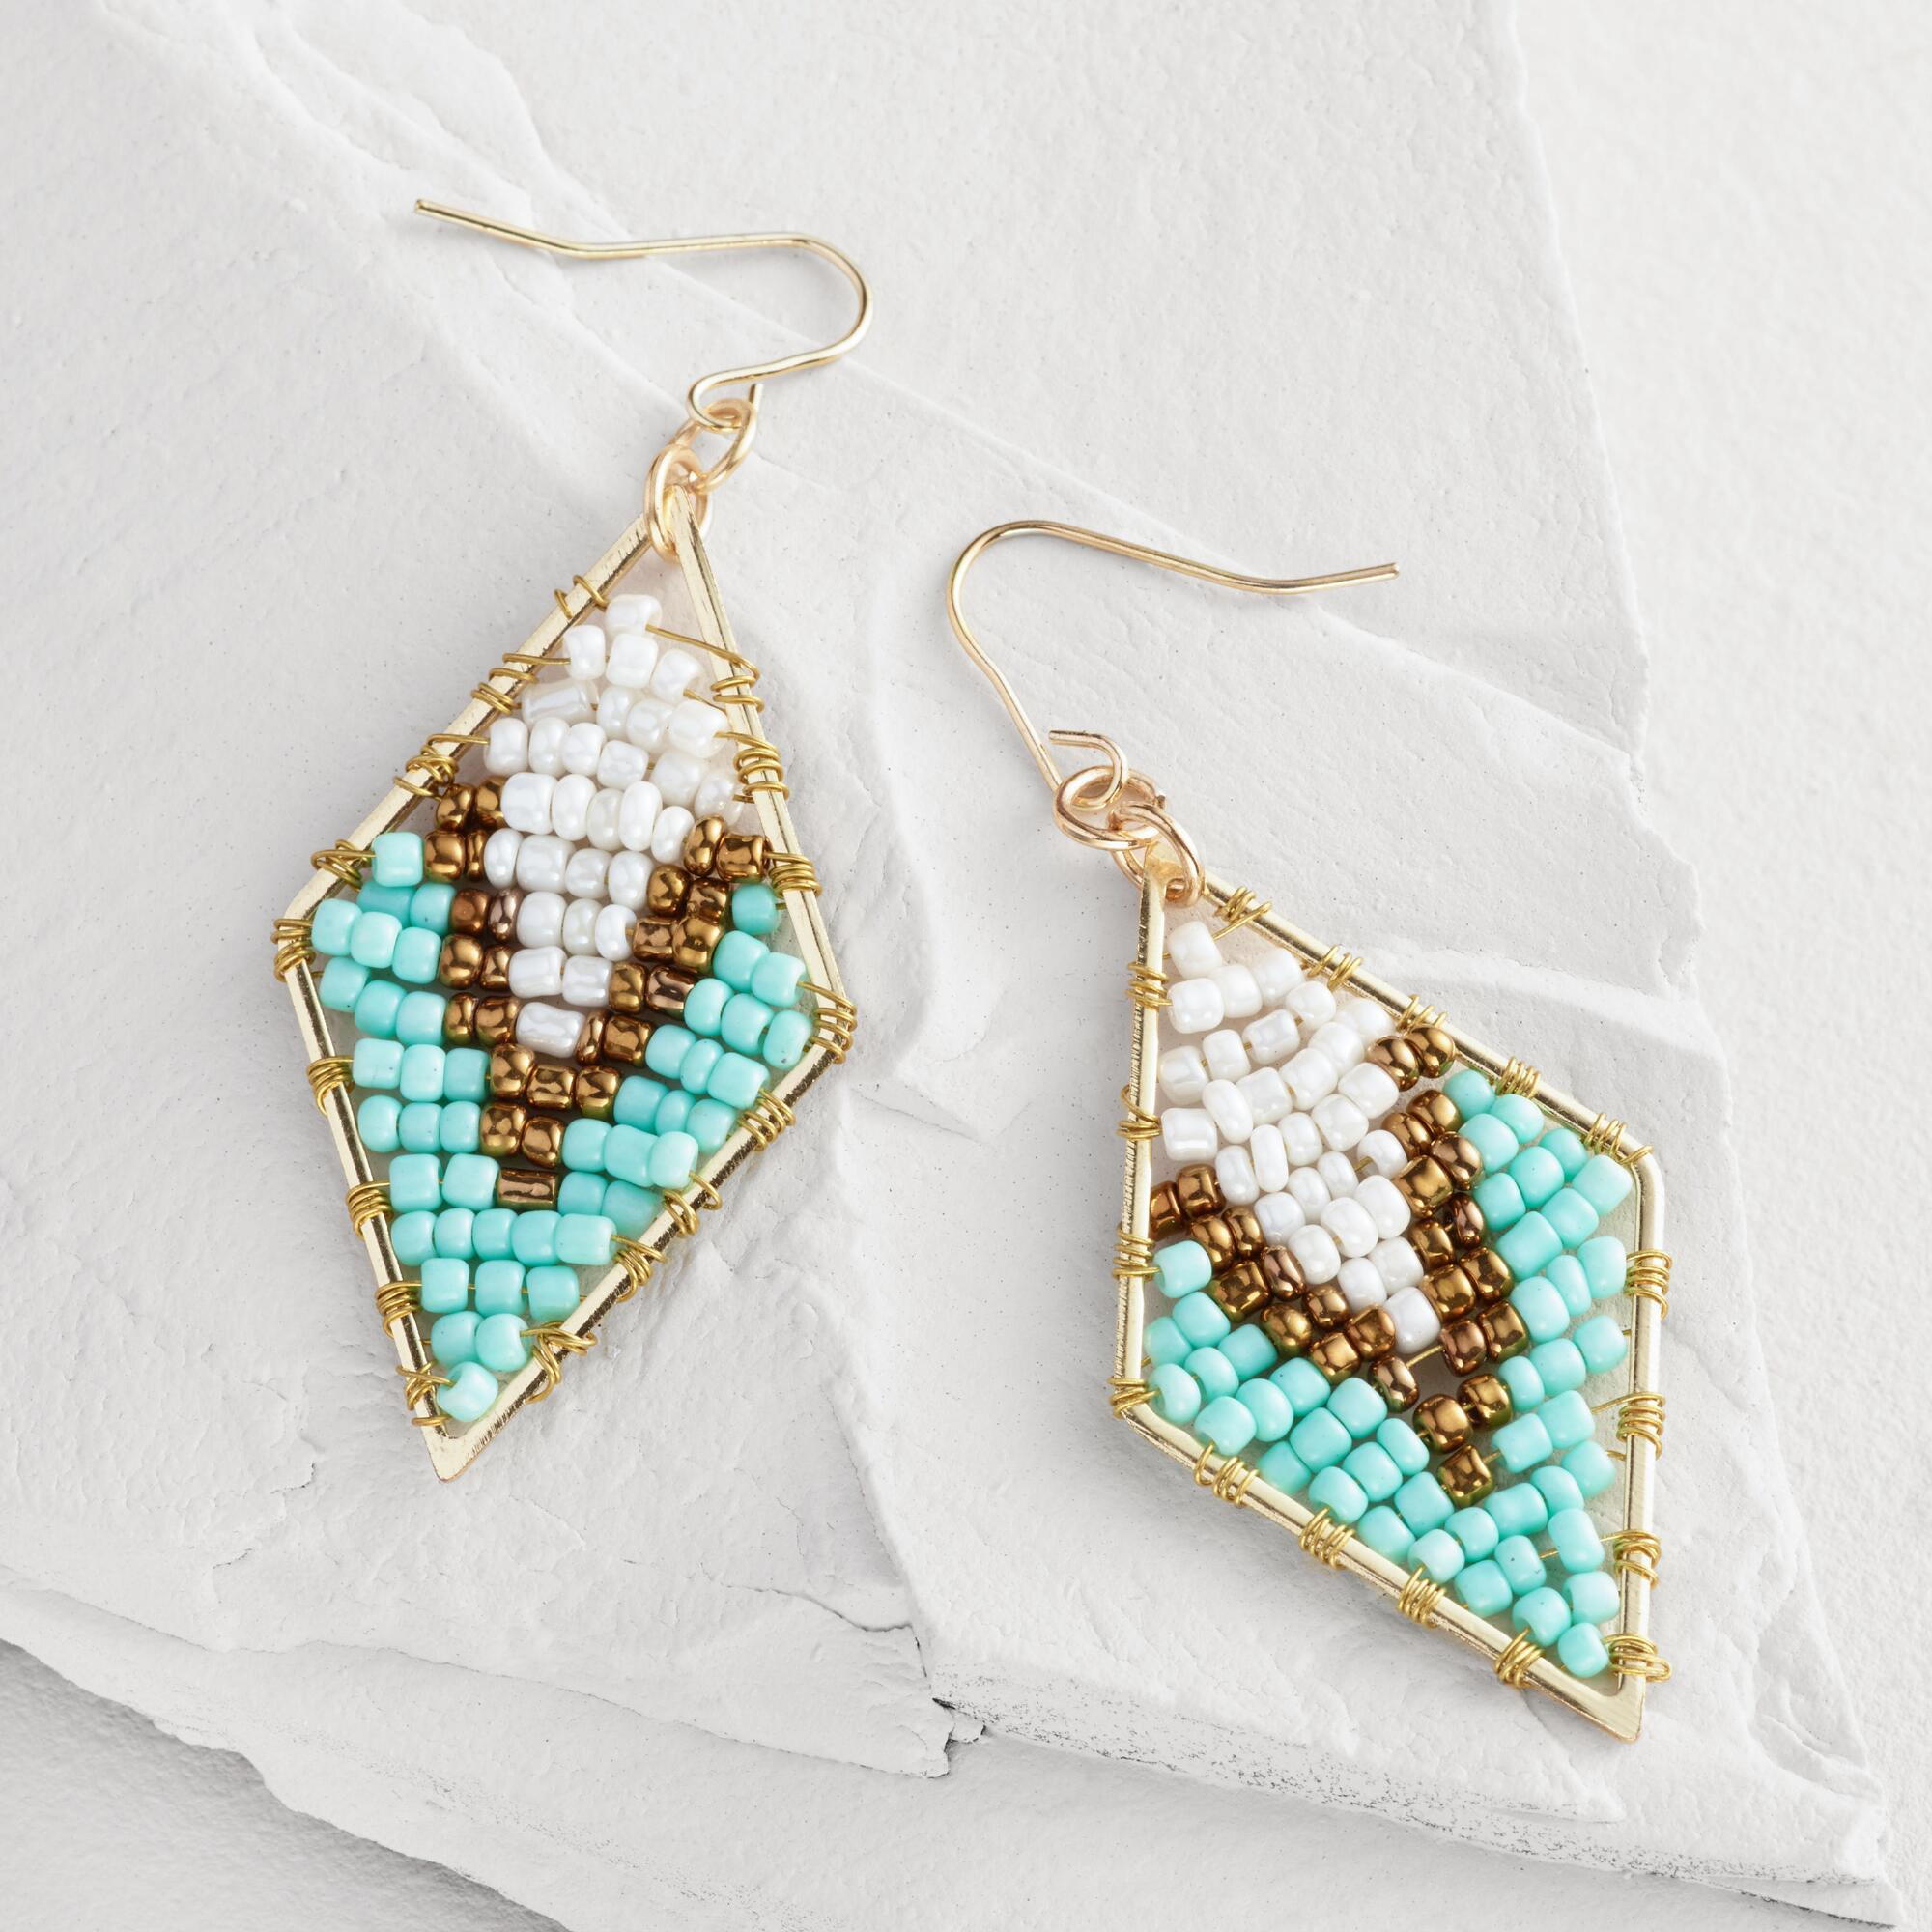 Triangle Earrings: Turquoise And Bronze Beaded Triangle Drop Earrings